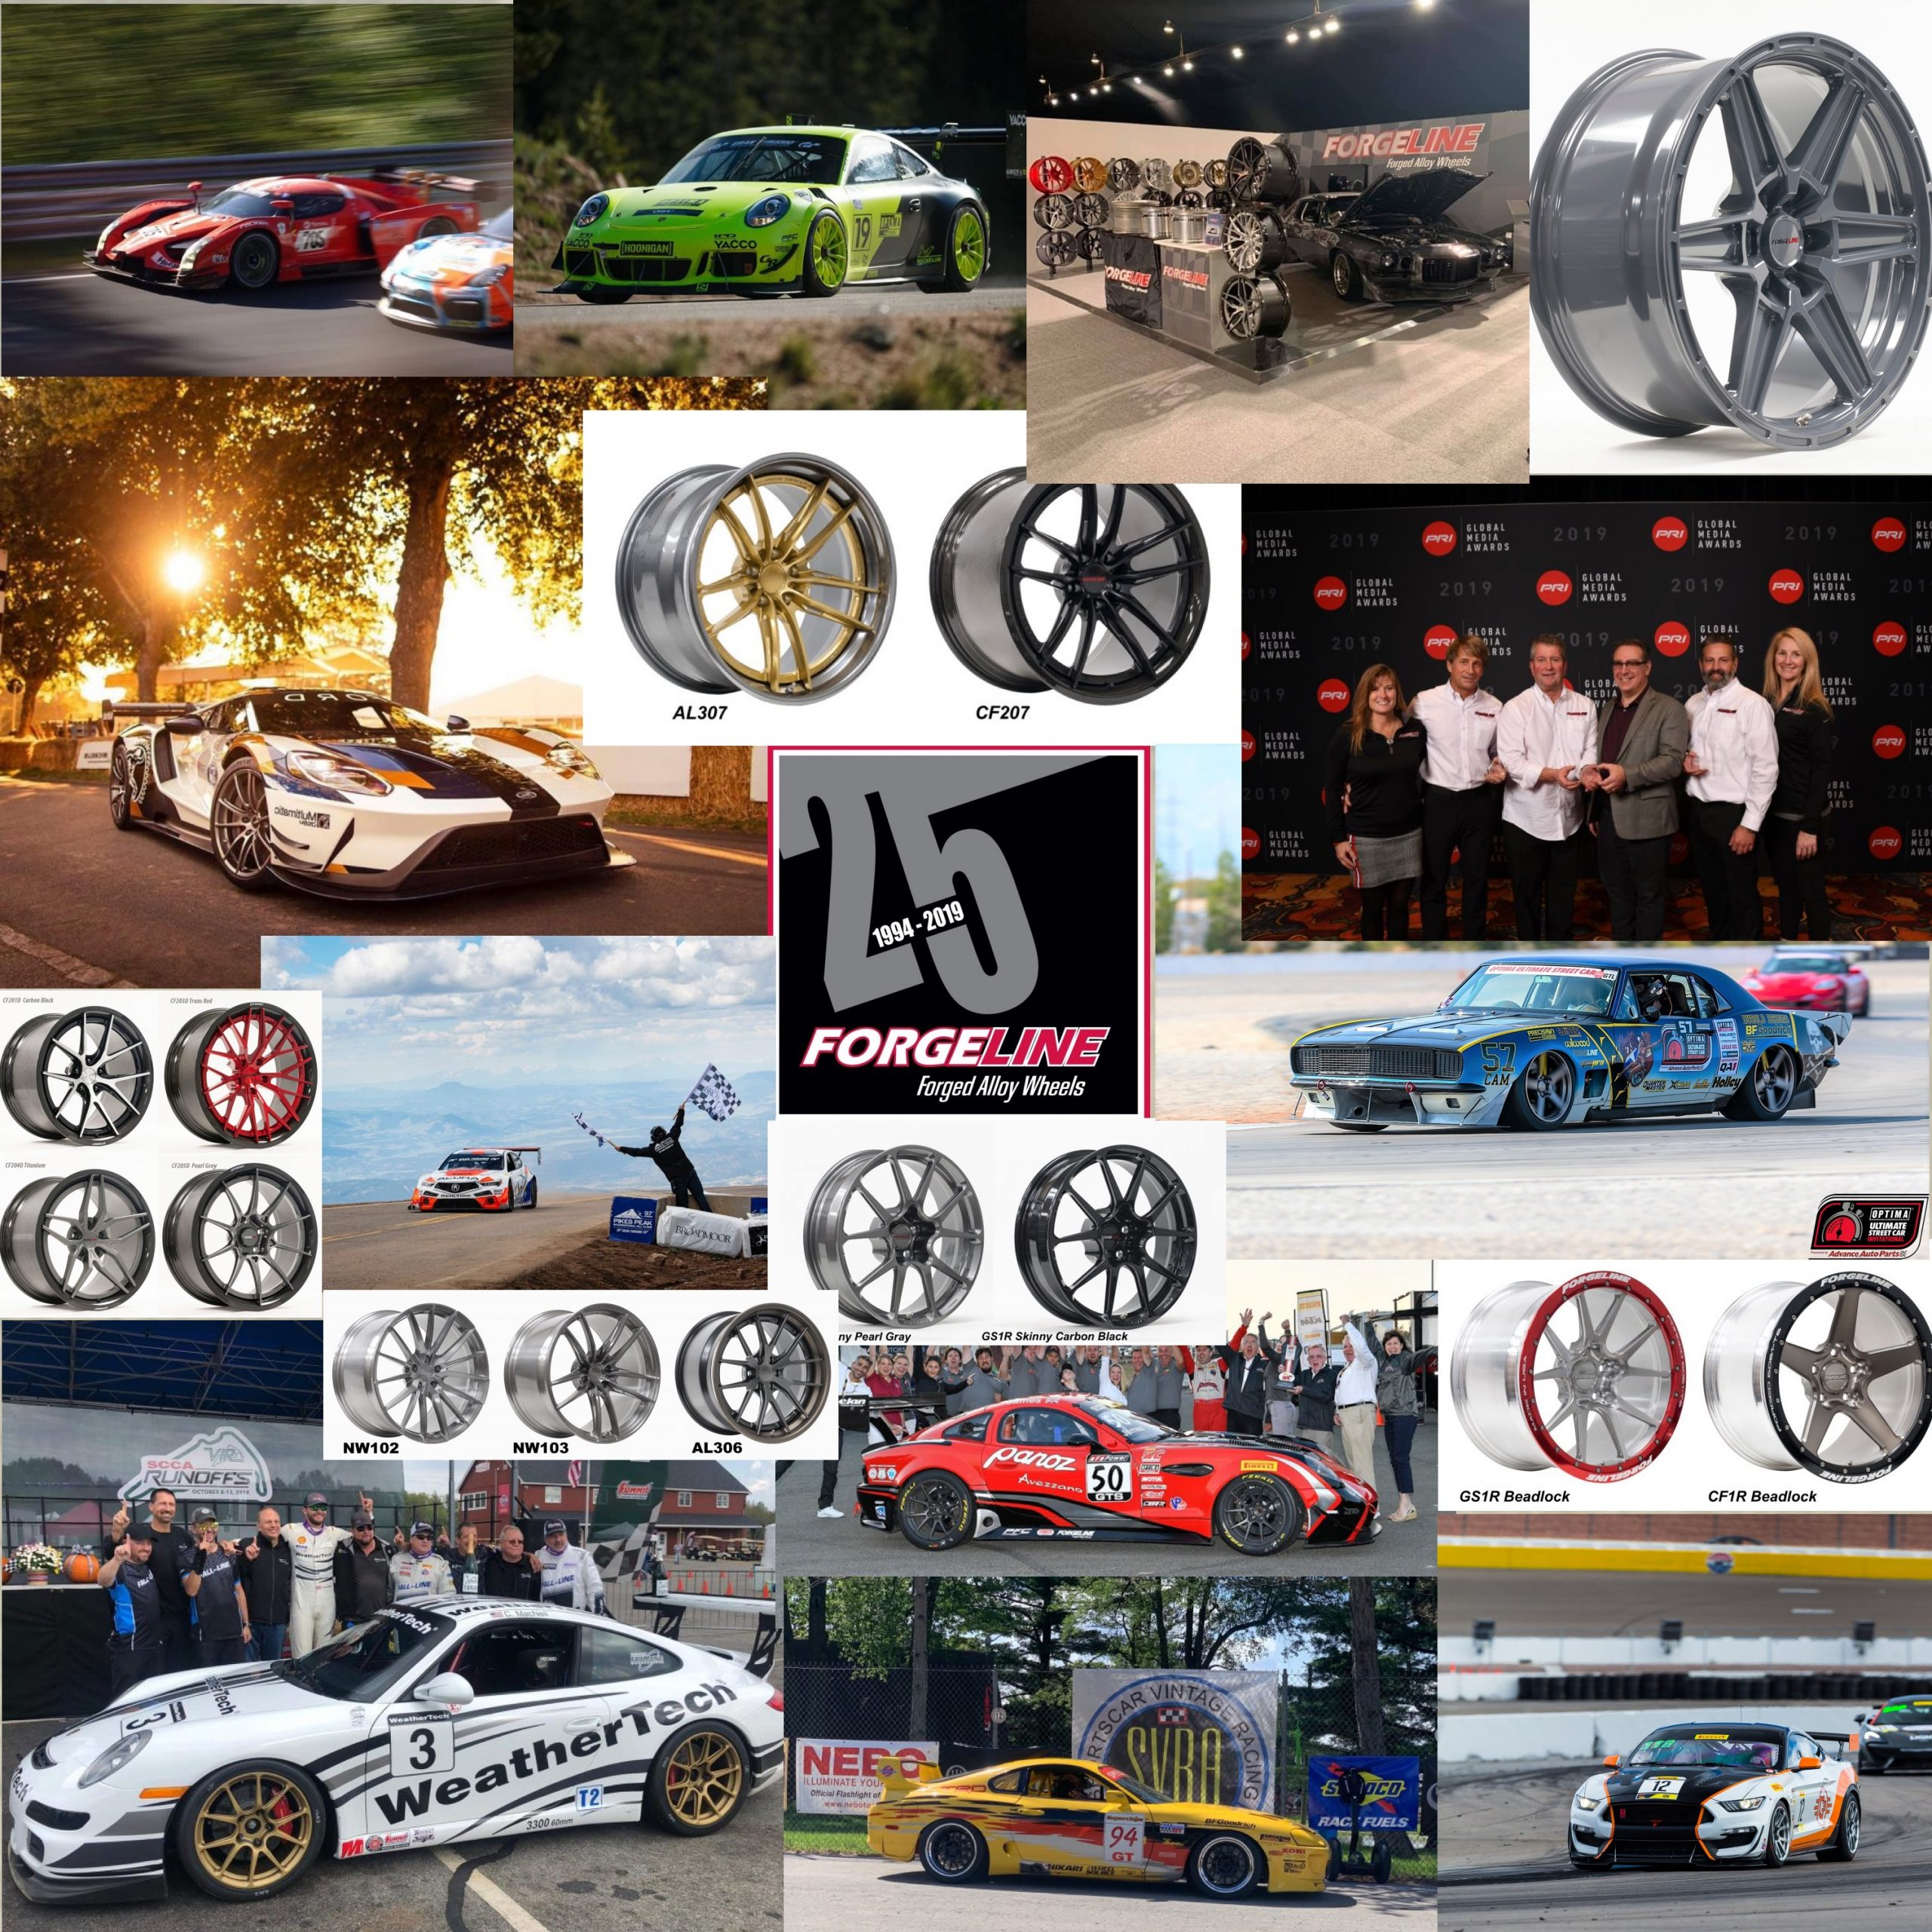 Forgeline's 2019 Year in Review Photo Collage